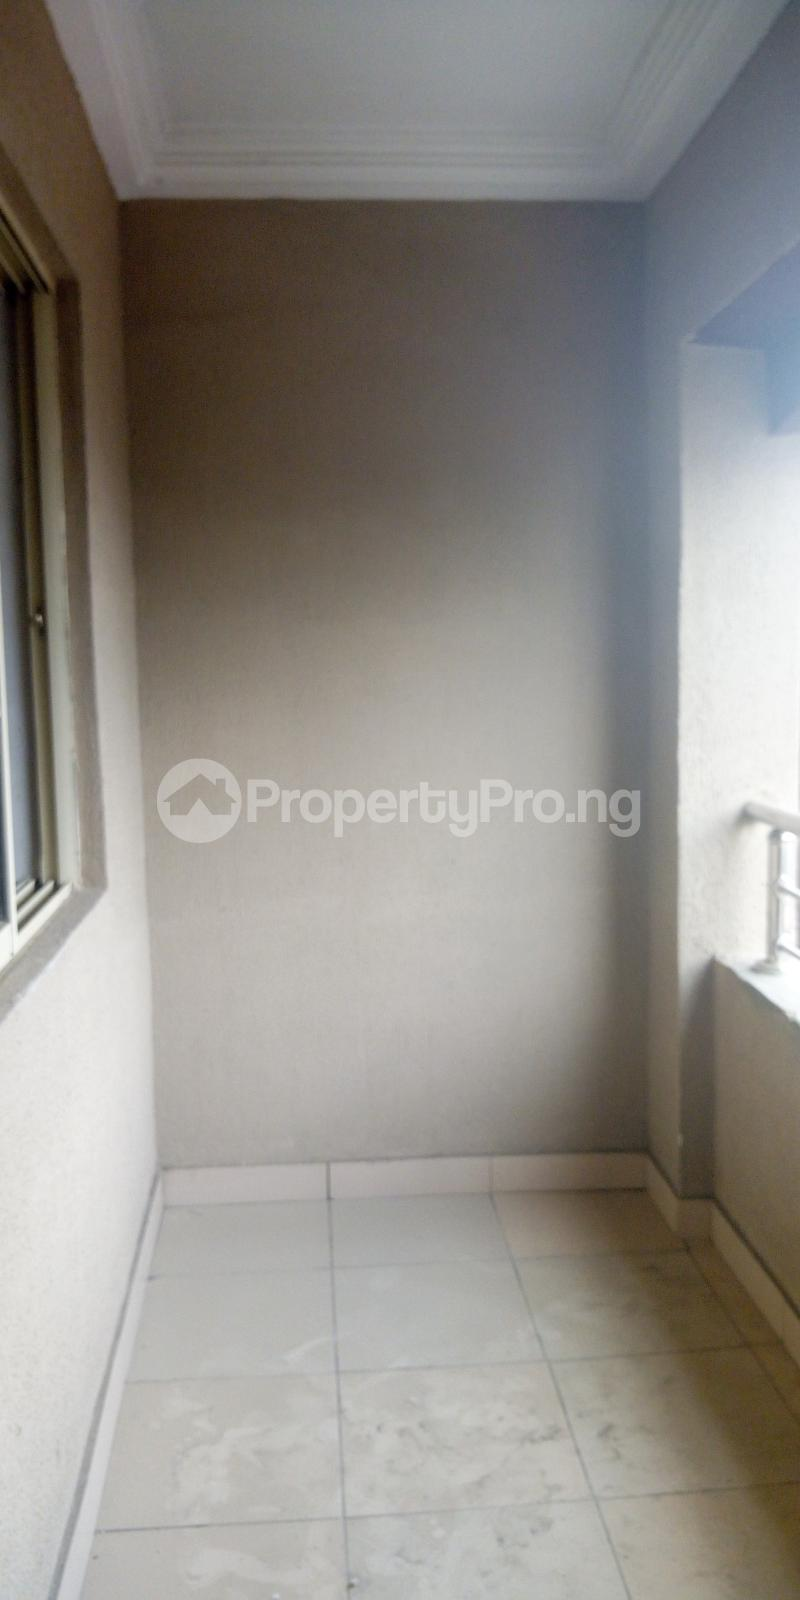 3 bedroom Flat / Apartment for rent private estate LSDPC Maryland Estate Maryland Lagos - 4